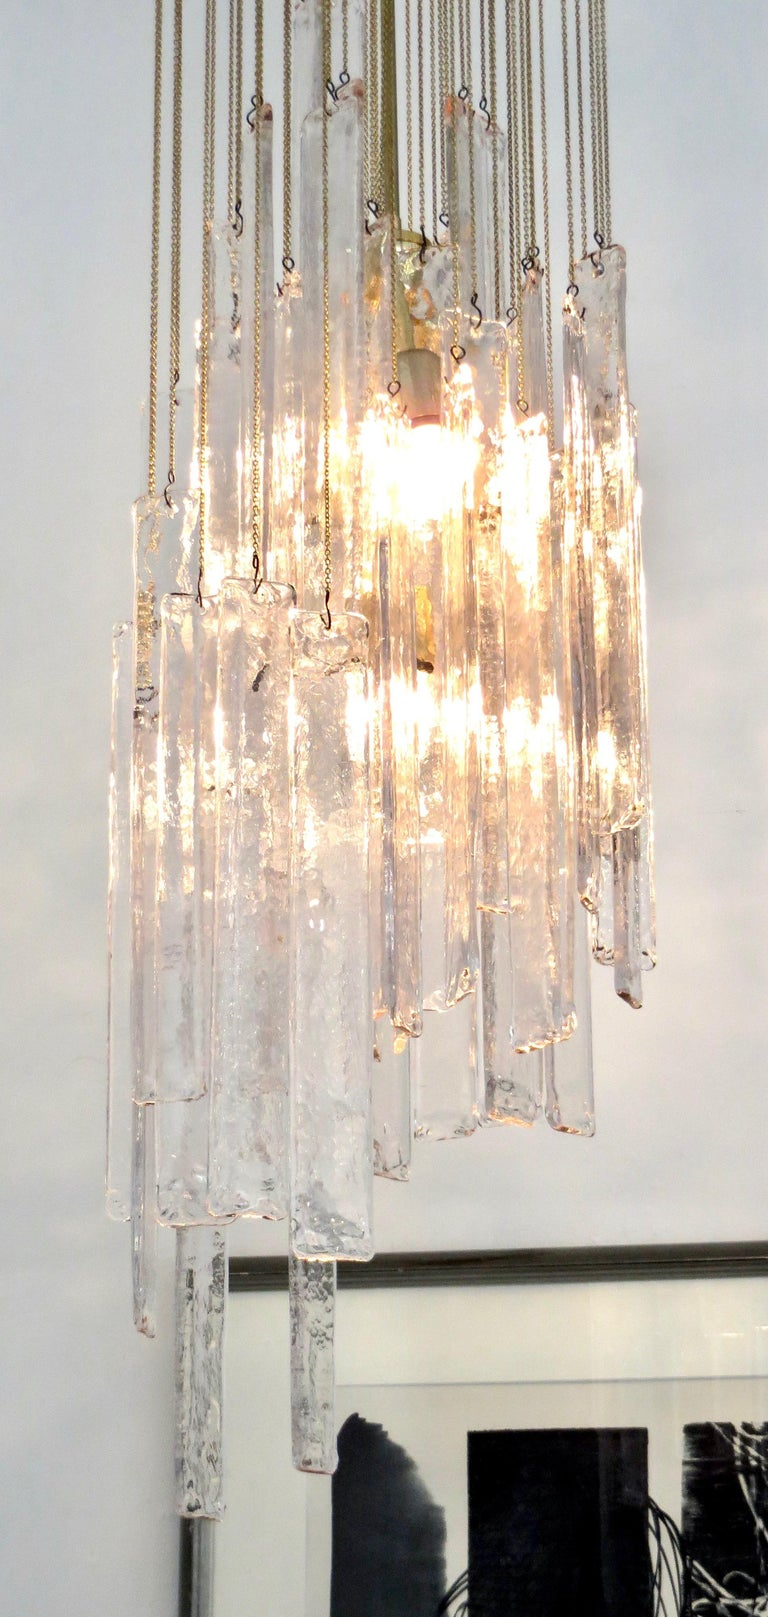 Mid-20th Century Mazzega Cascade Italian Murano Glass Extra Long Chandelier For Sale